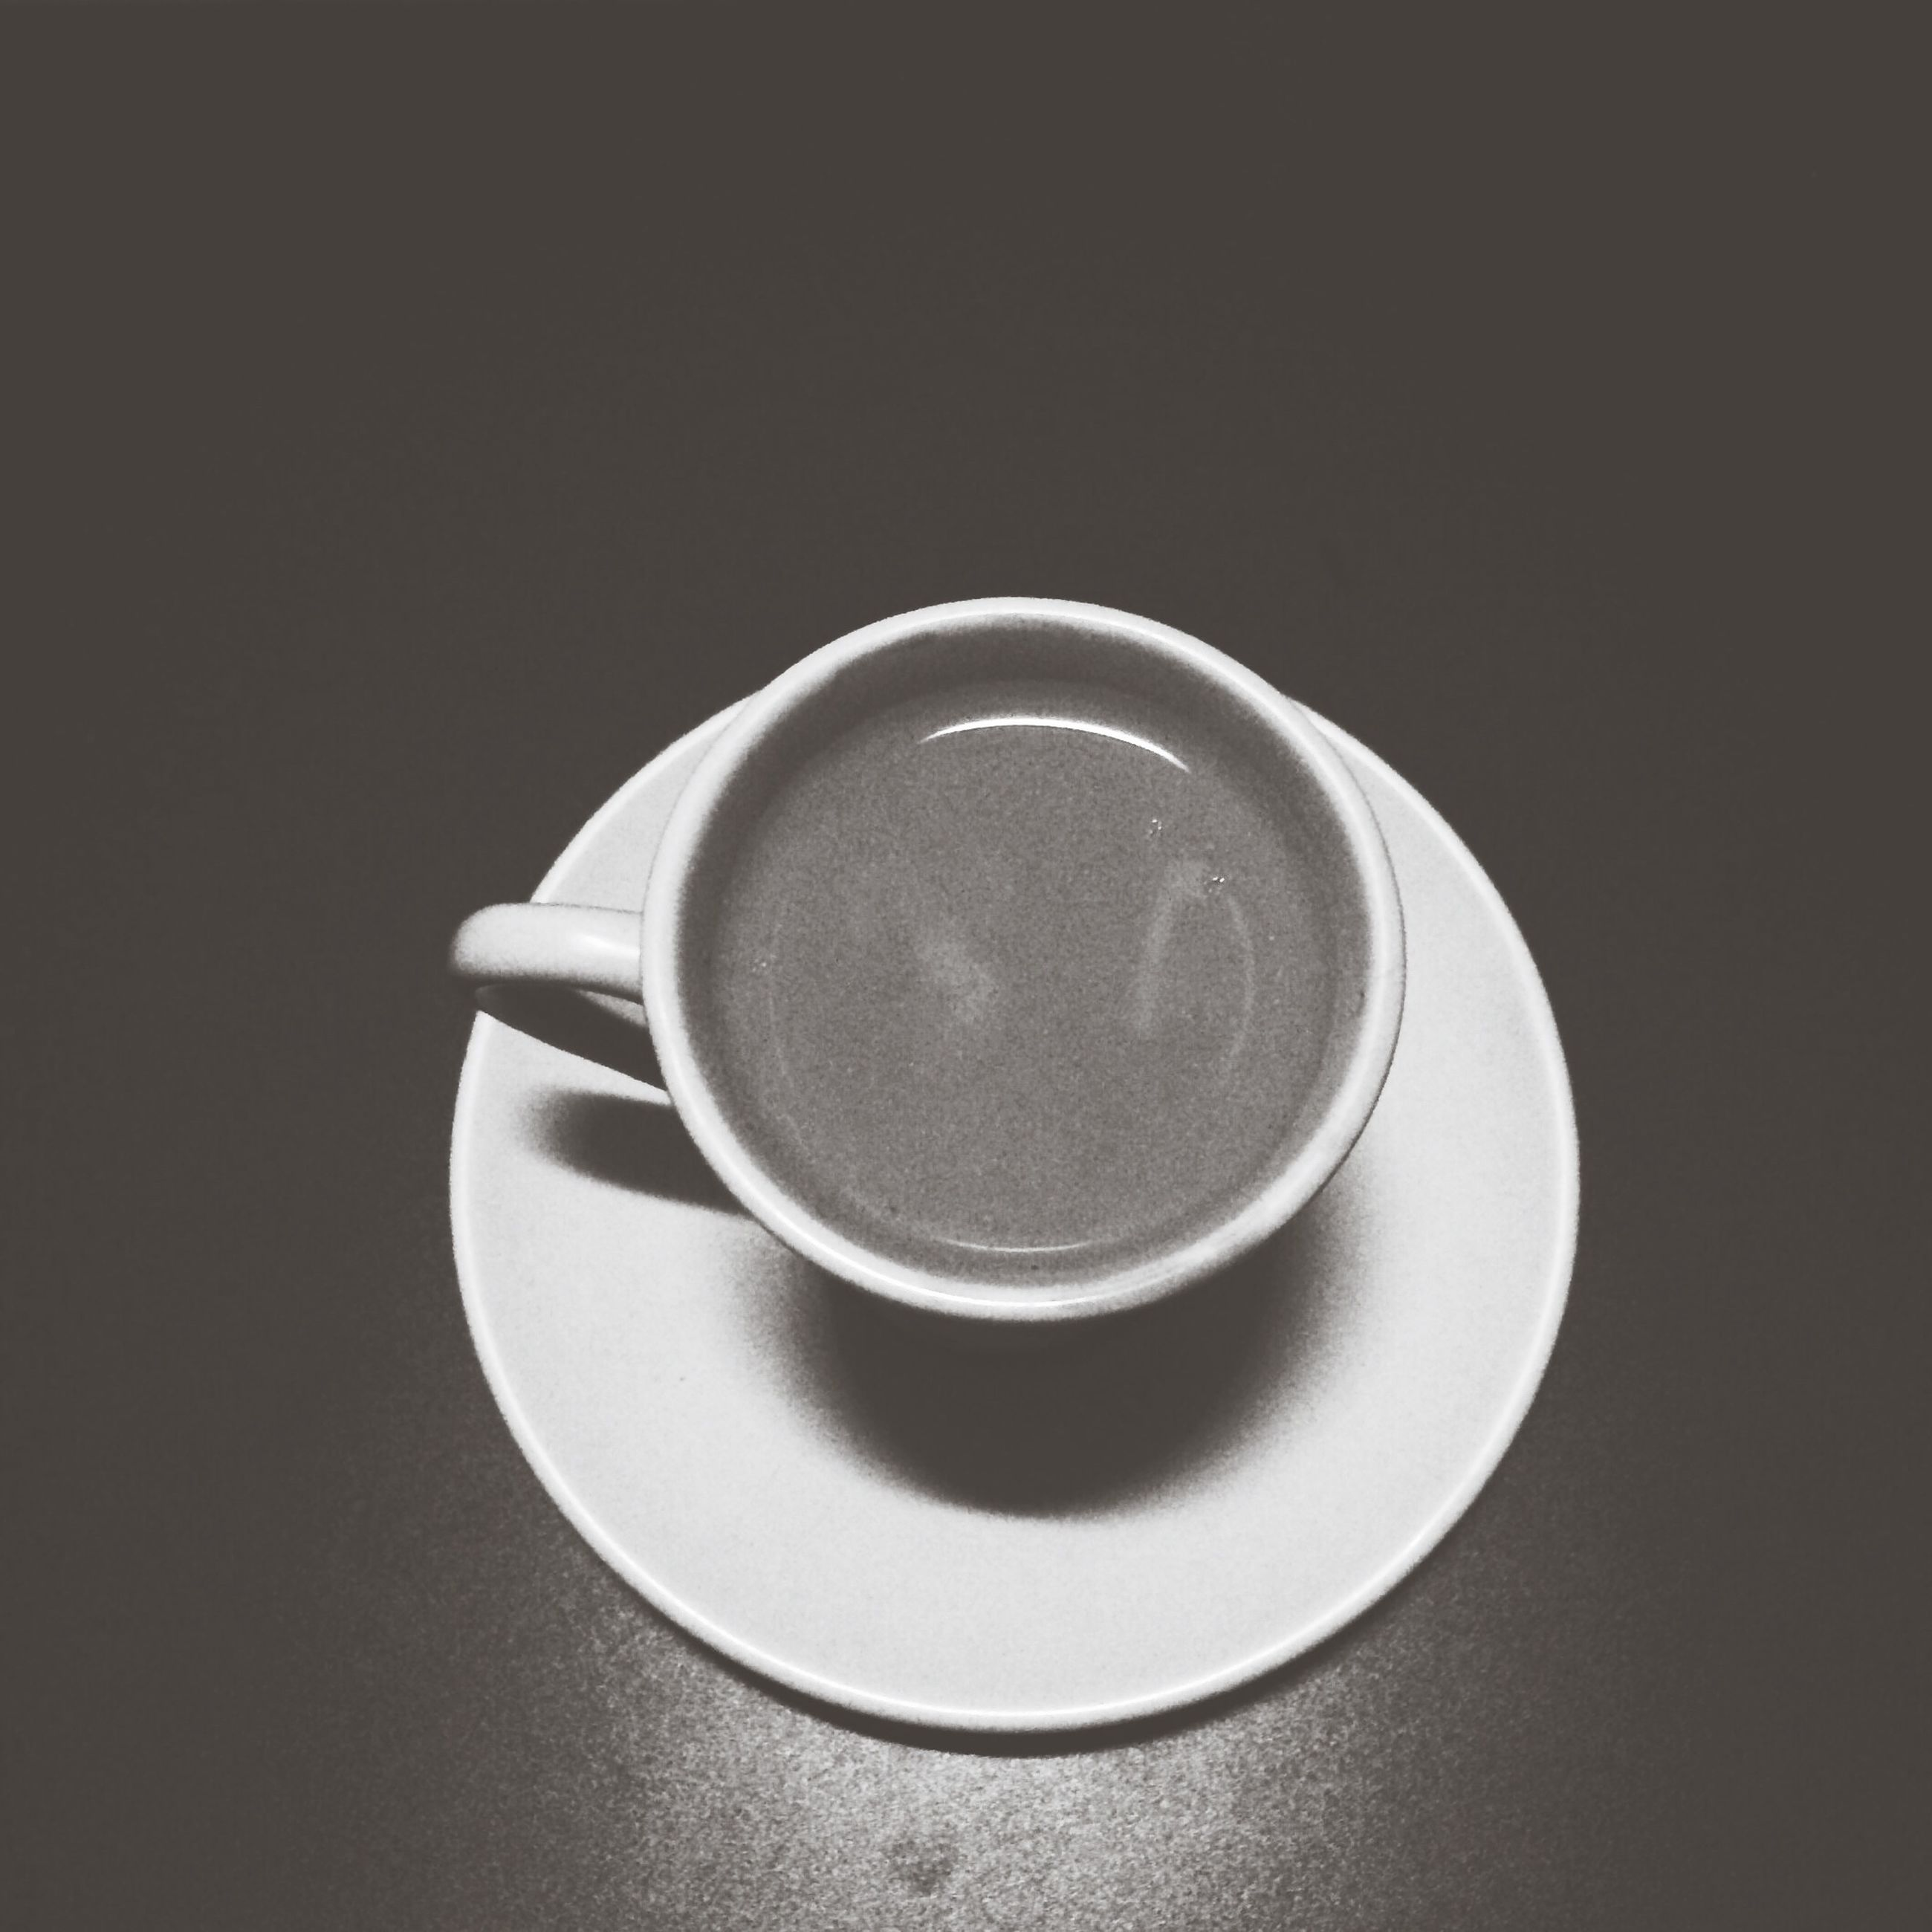 indoors, coffee cup, still life, studio shot, food and drink, drink, copy space, saucer, close-up, table, cup, directly above, refreshment, coffee - drink, black background, high angle view, no people, coffee, circle, white color